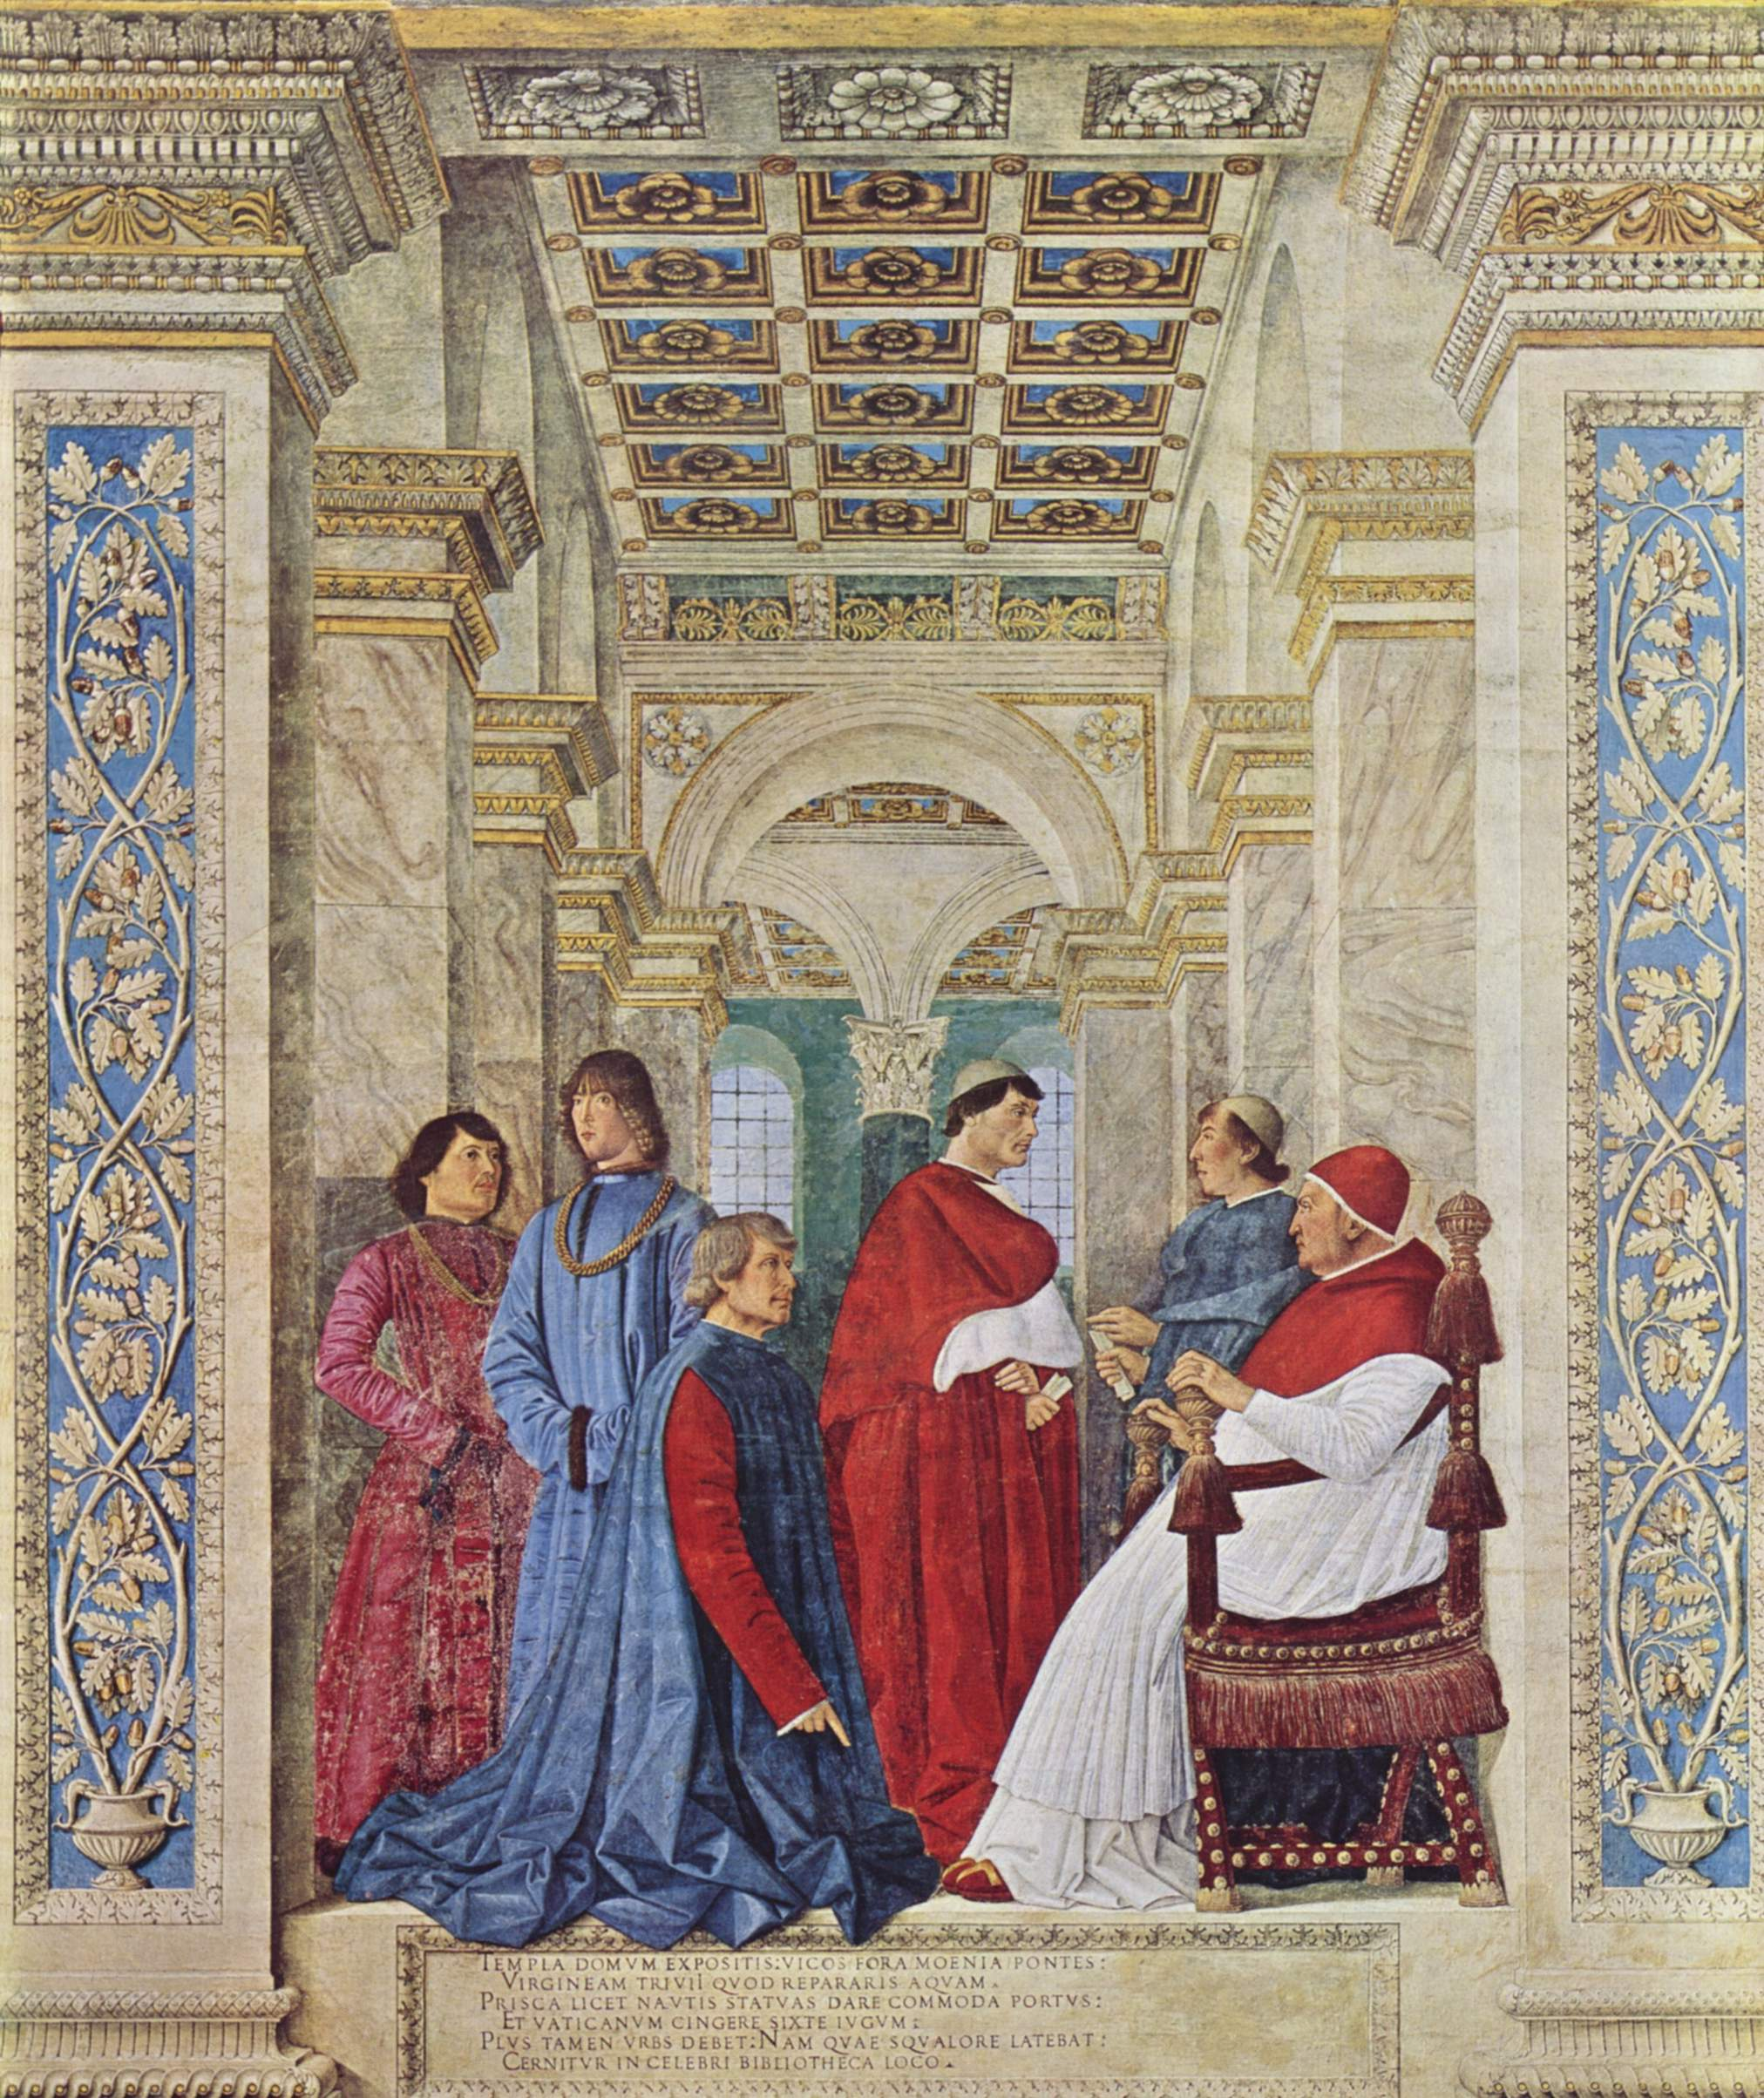 Pope Sixtus IV Appoints Platina Prefect of the Vatican Library